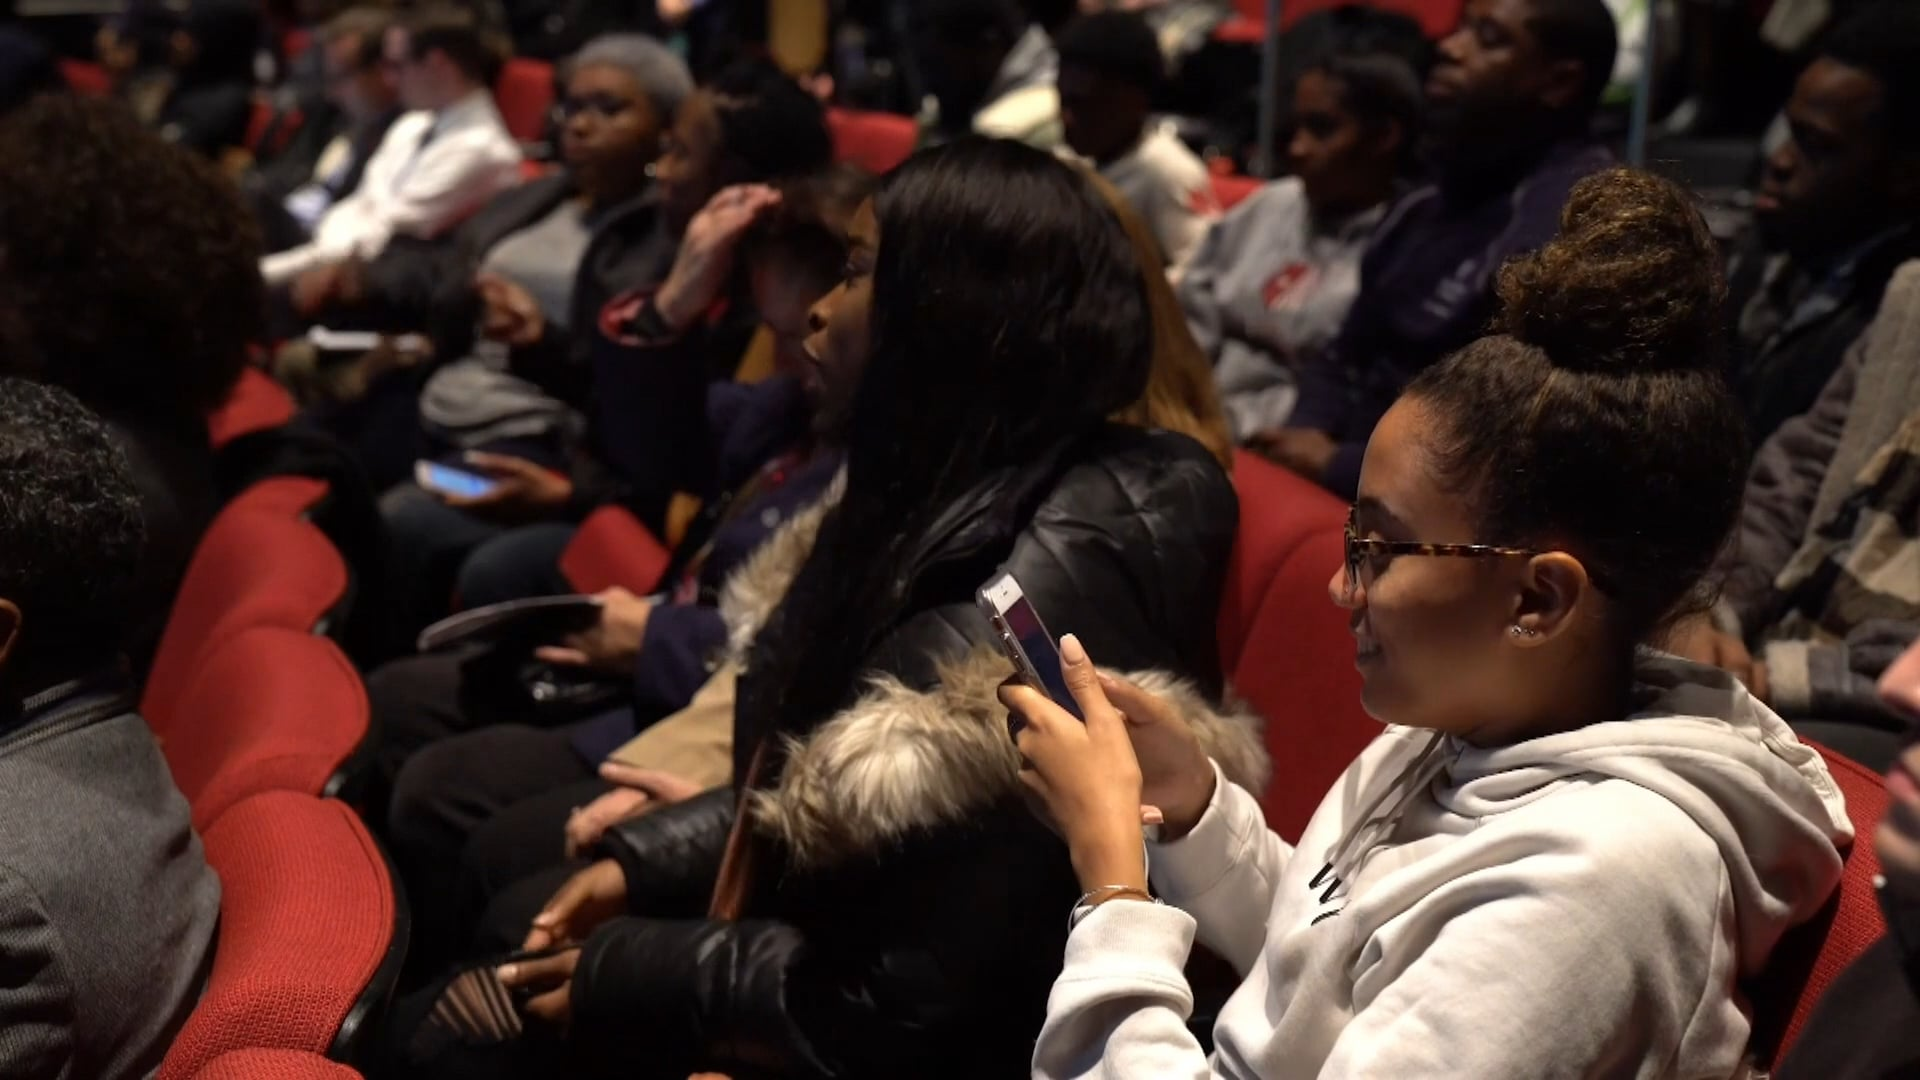 Stony Brook News: Diversity Townhall Meeting